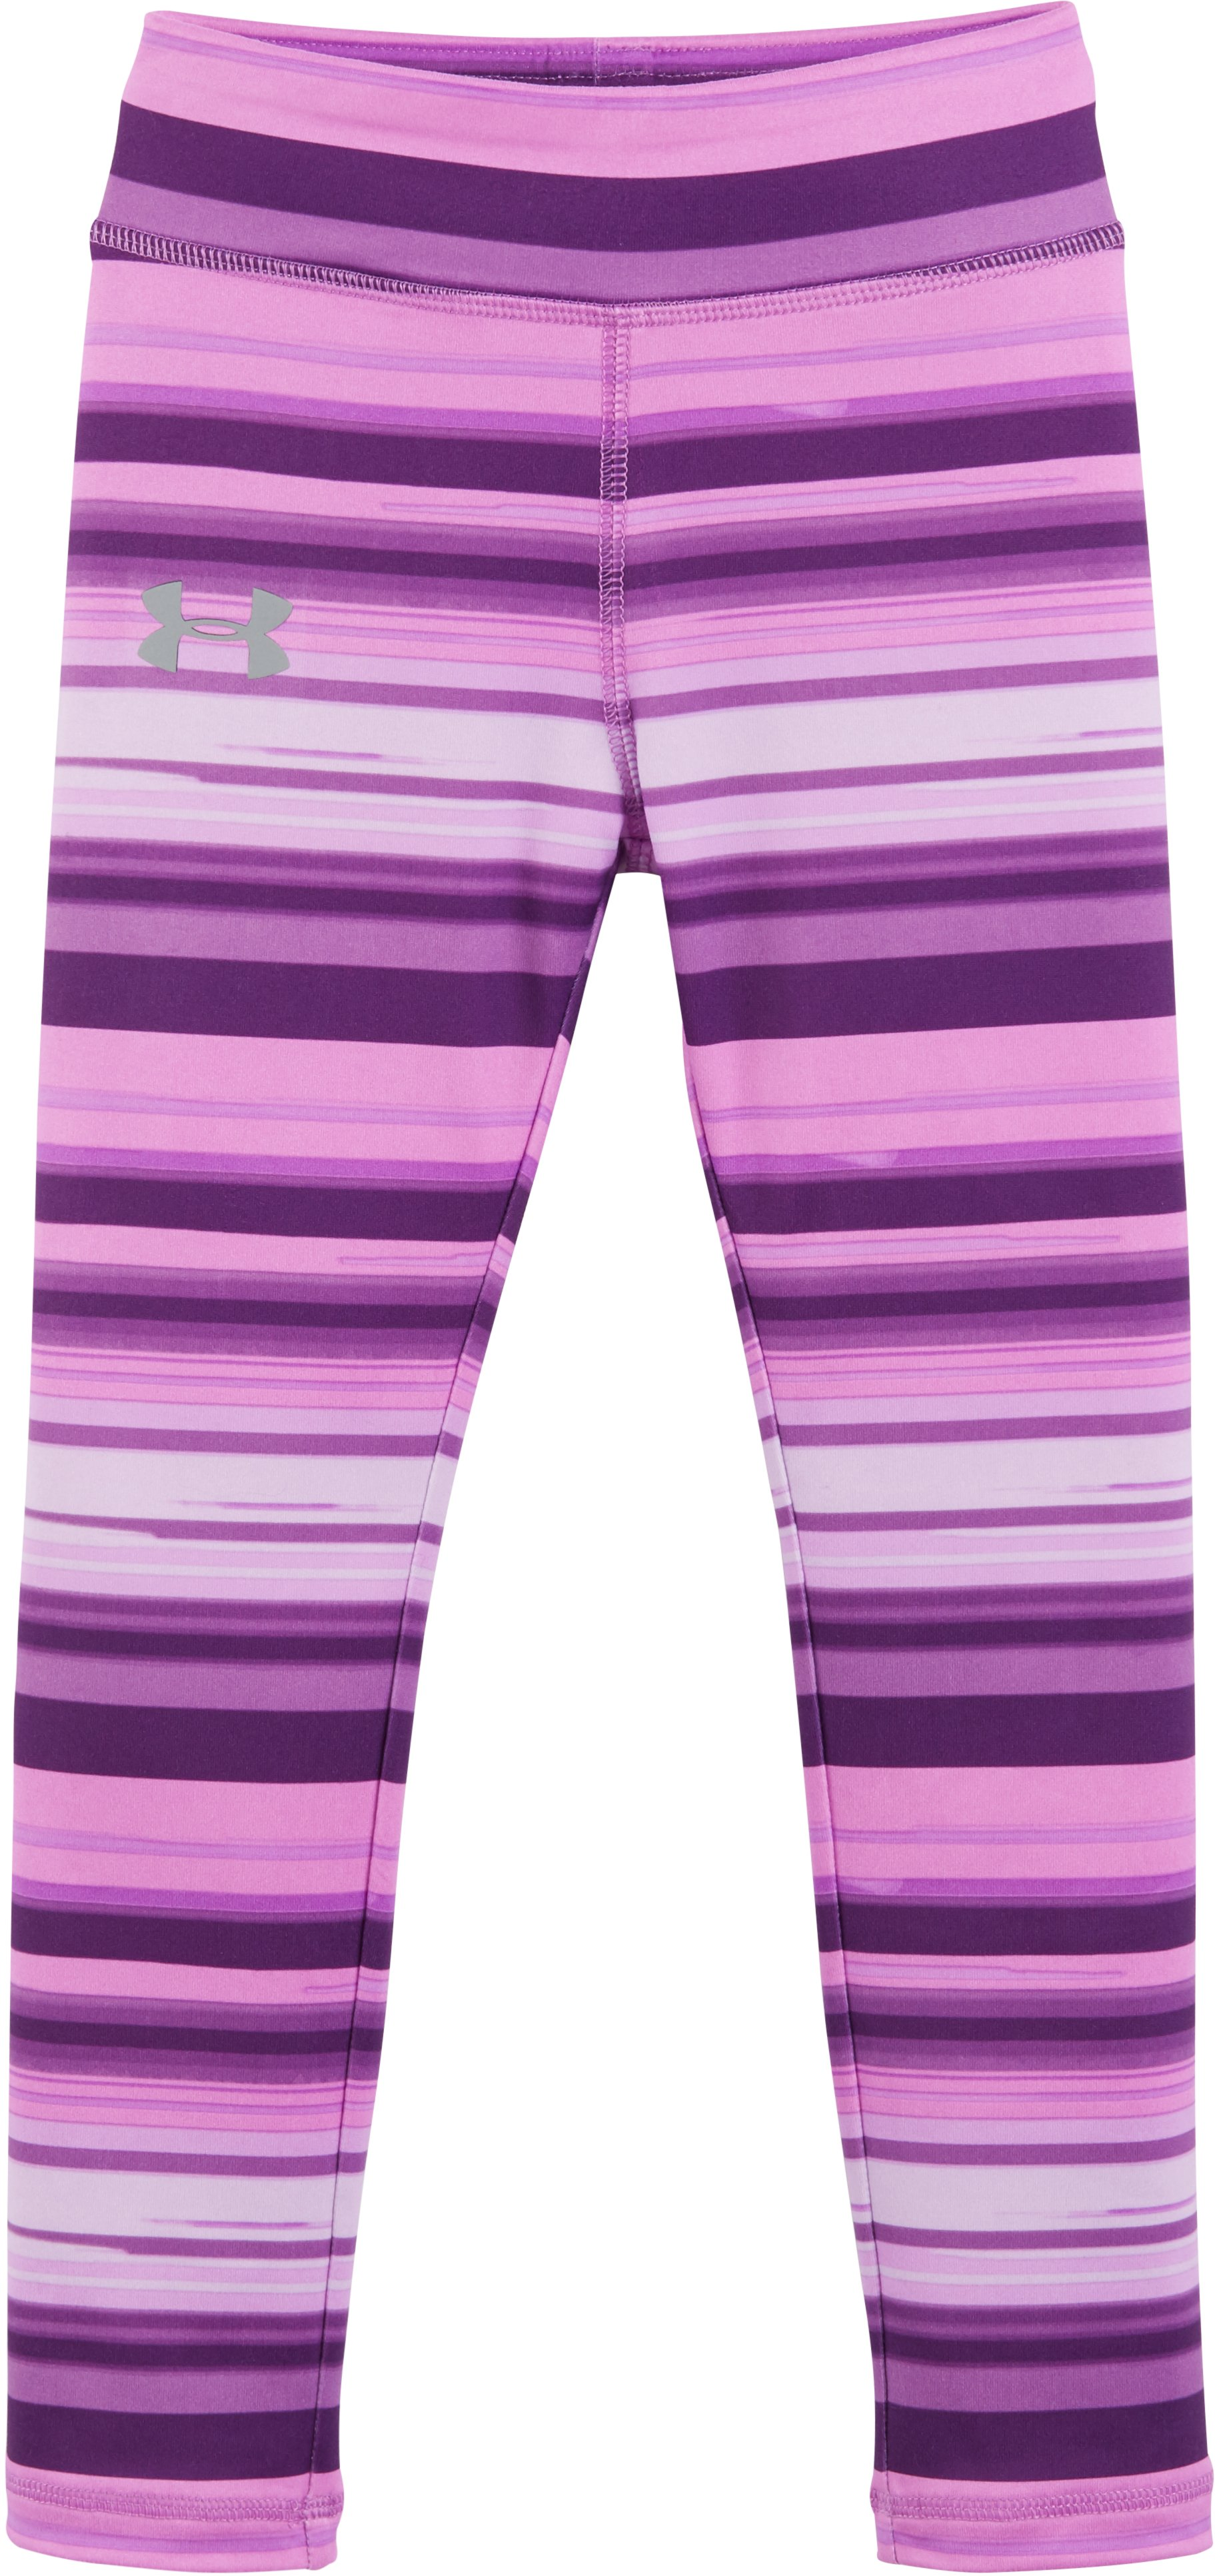 Girls' Pre-School UA Blurred Stripe Shimmer Leggings, Hendrix, Laydown